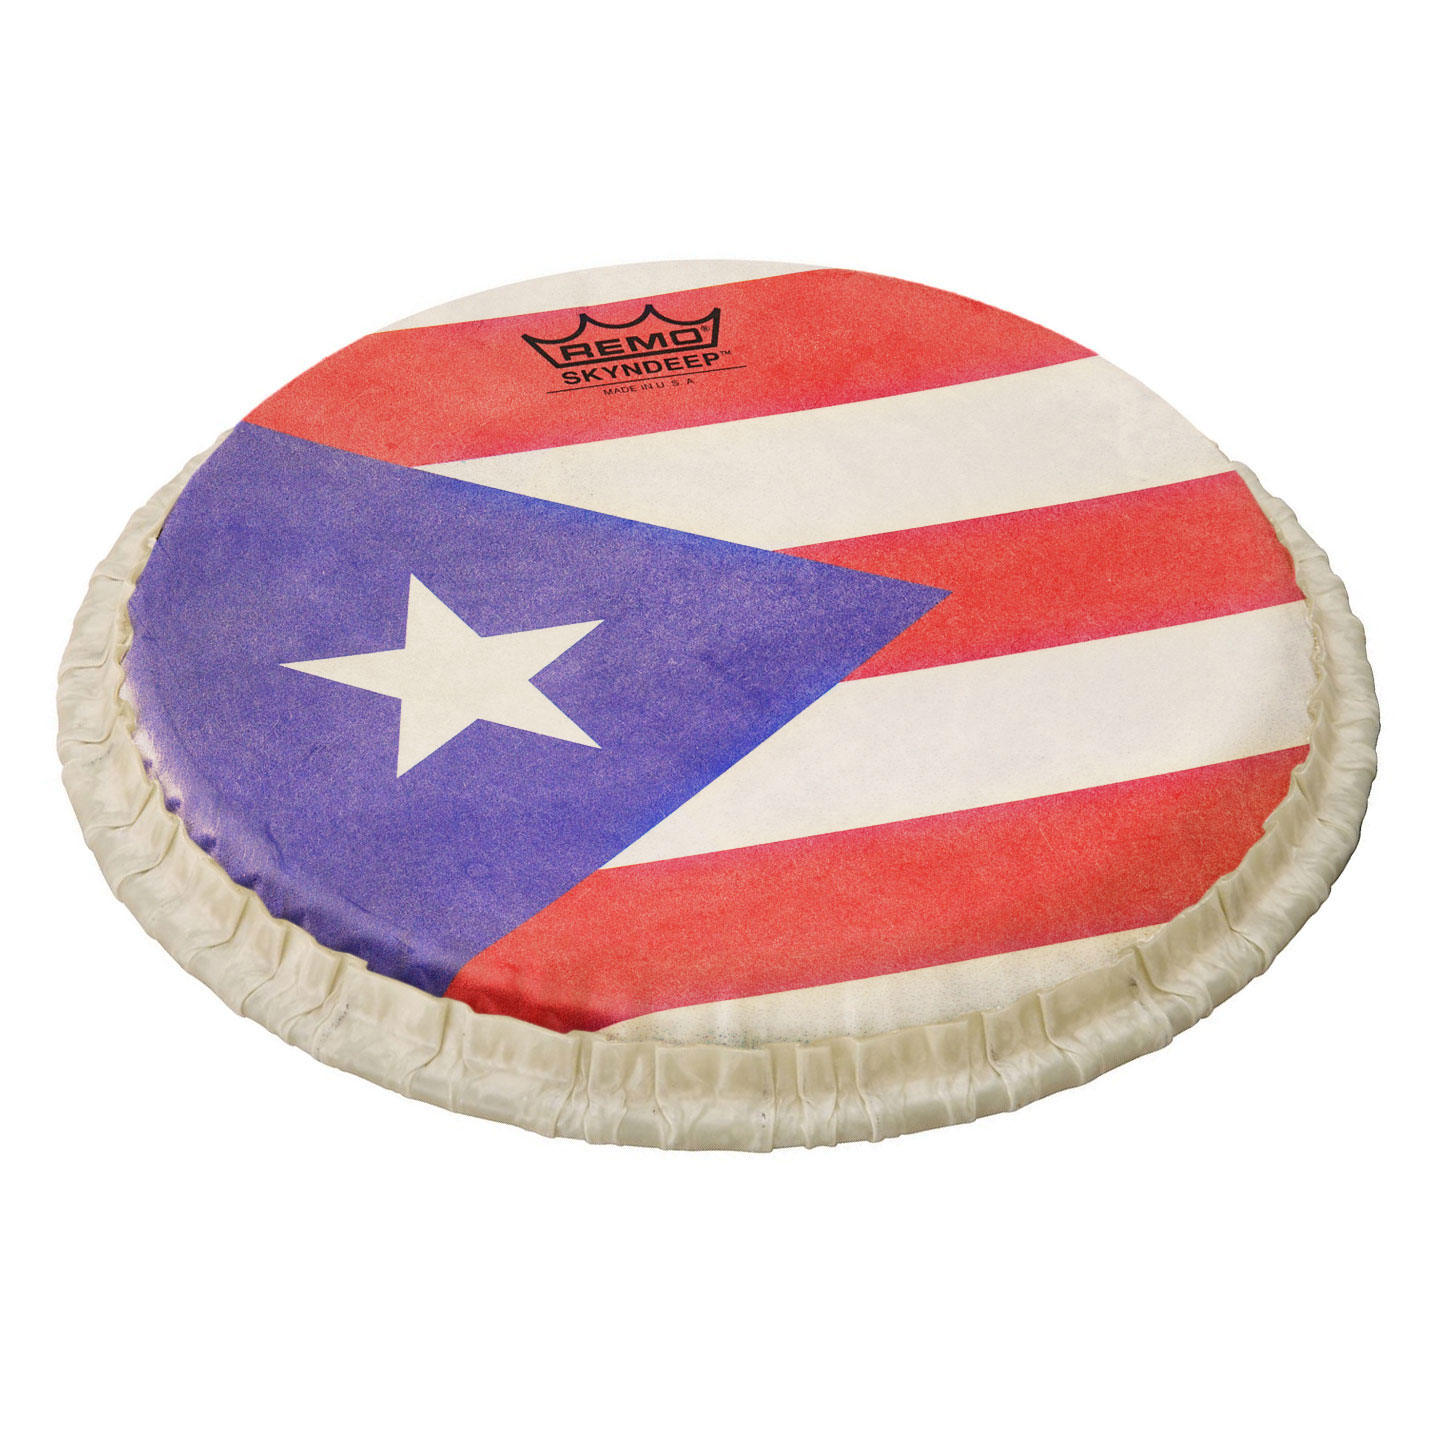 """Remo 9"""" Tucked Skyndeep Bongo Drum Head with Puerto Rican Flag Graphic"""